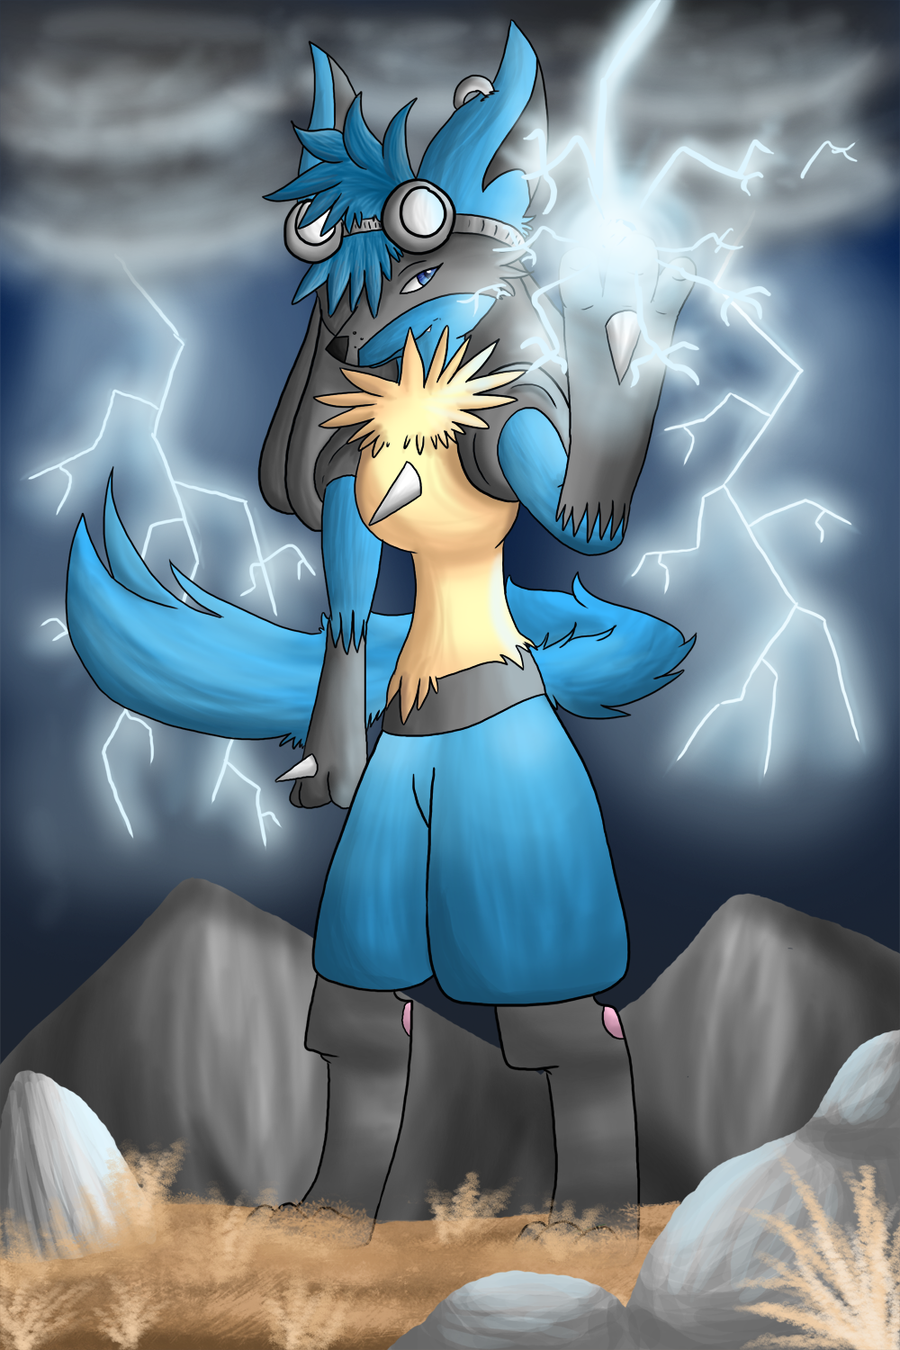 Contest: Bolt the Lucario by SilverLucario12